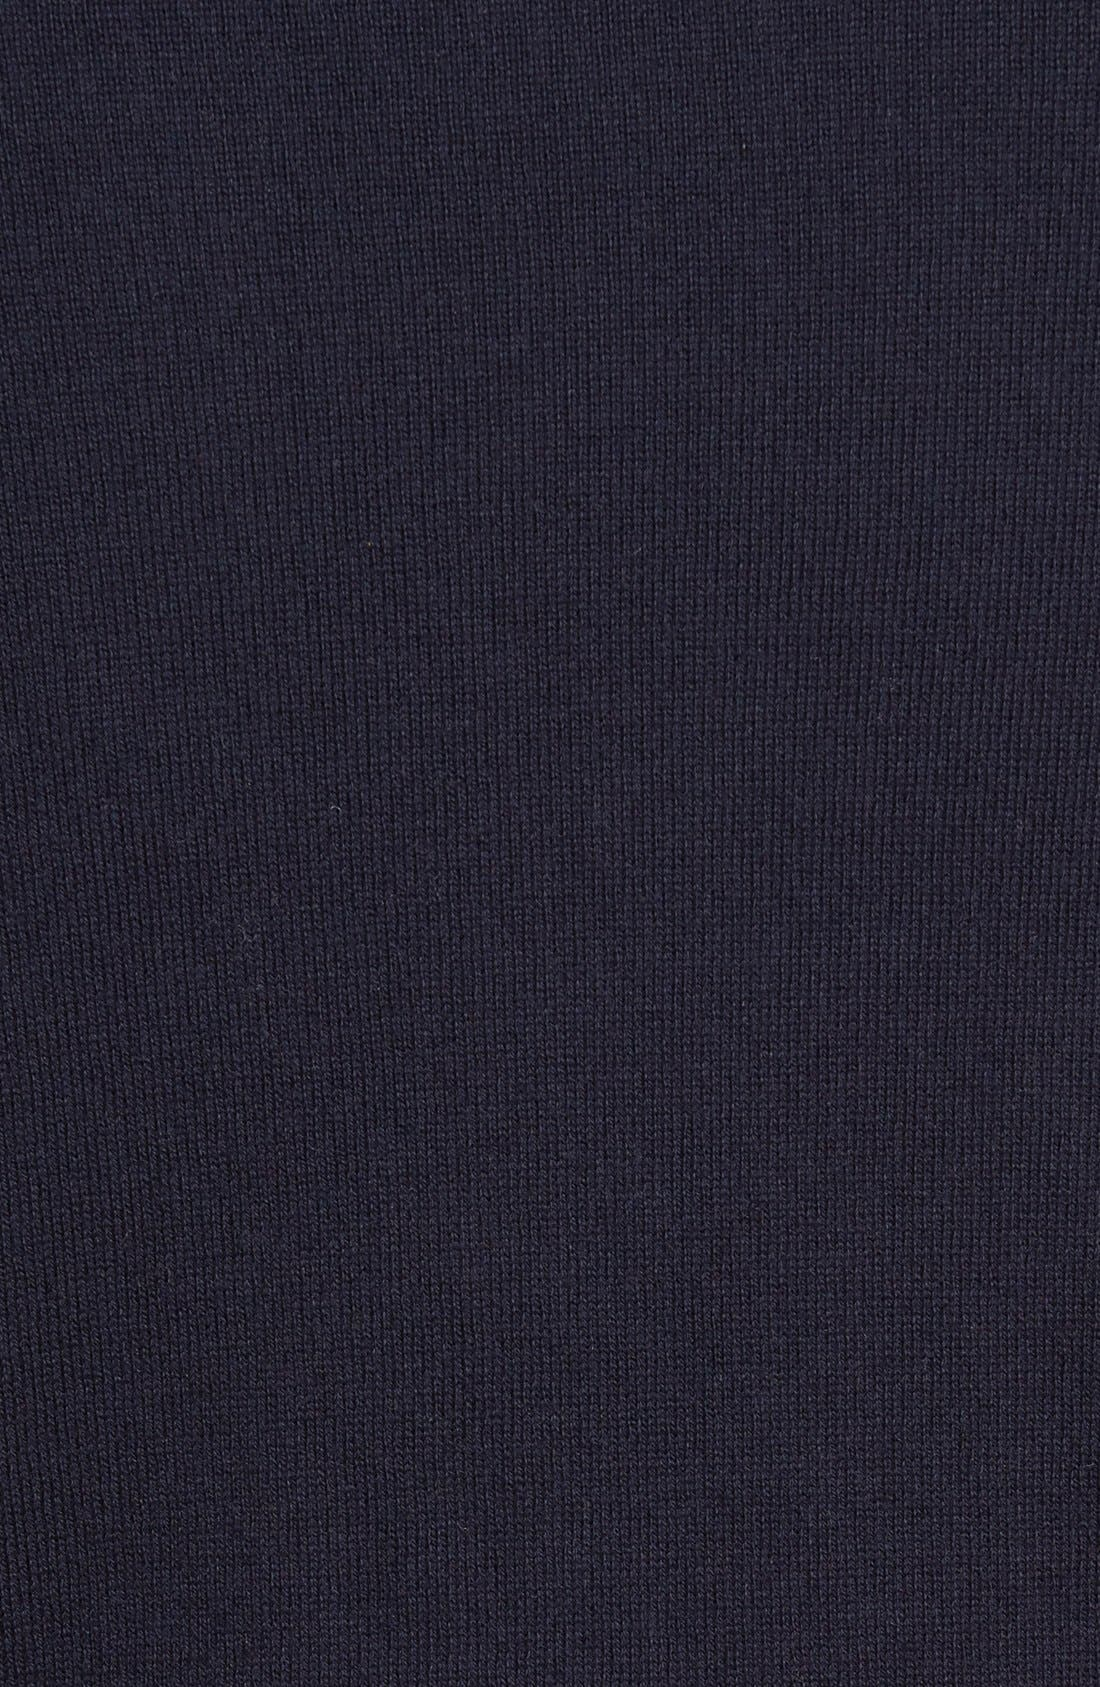 Half Zip Cotton & Cashmere Pullover,                             Alternate thumbnail 7, color,                             NAVY NIGHT